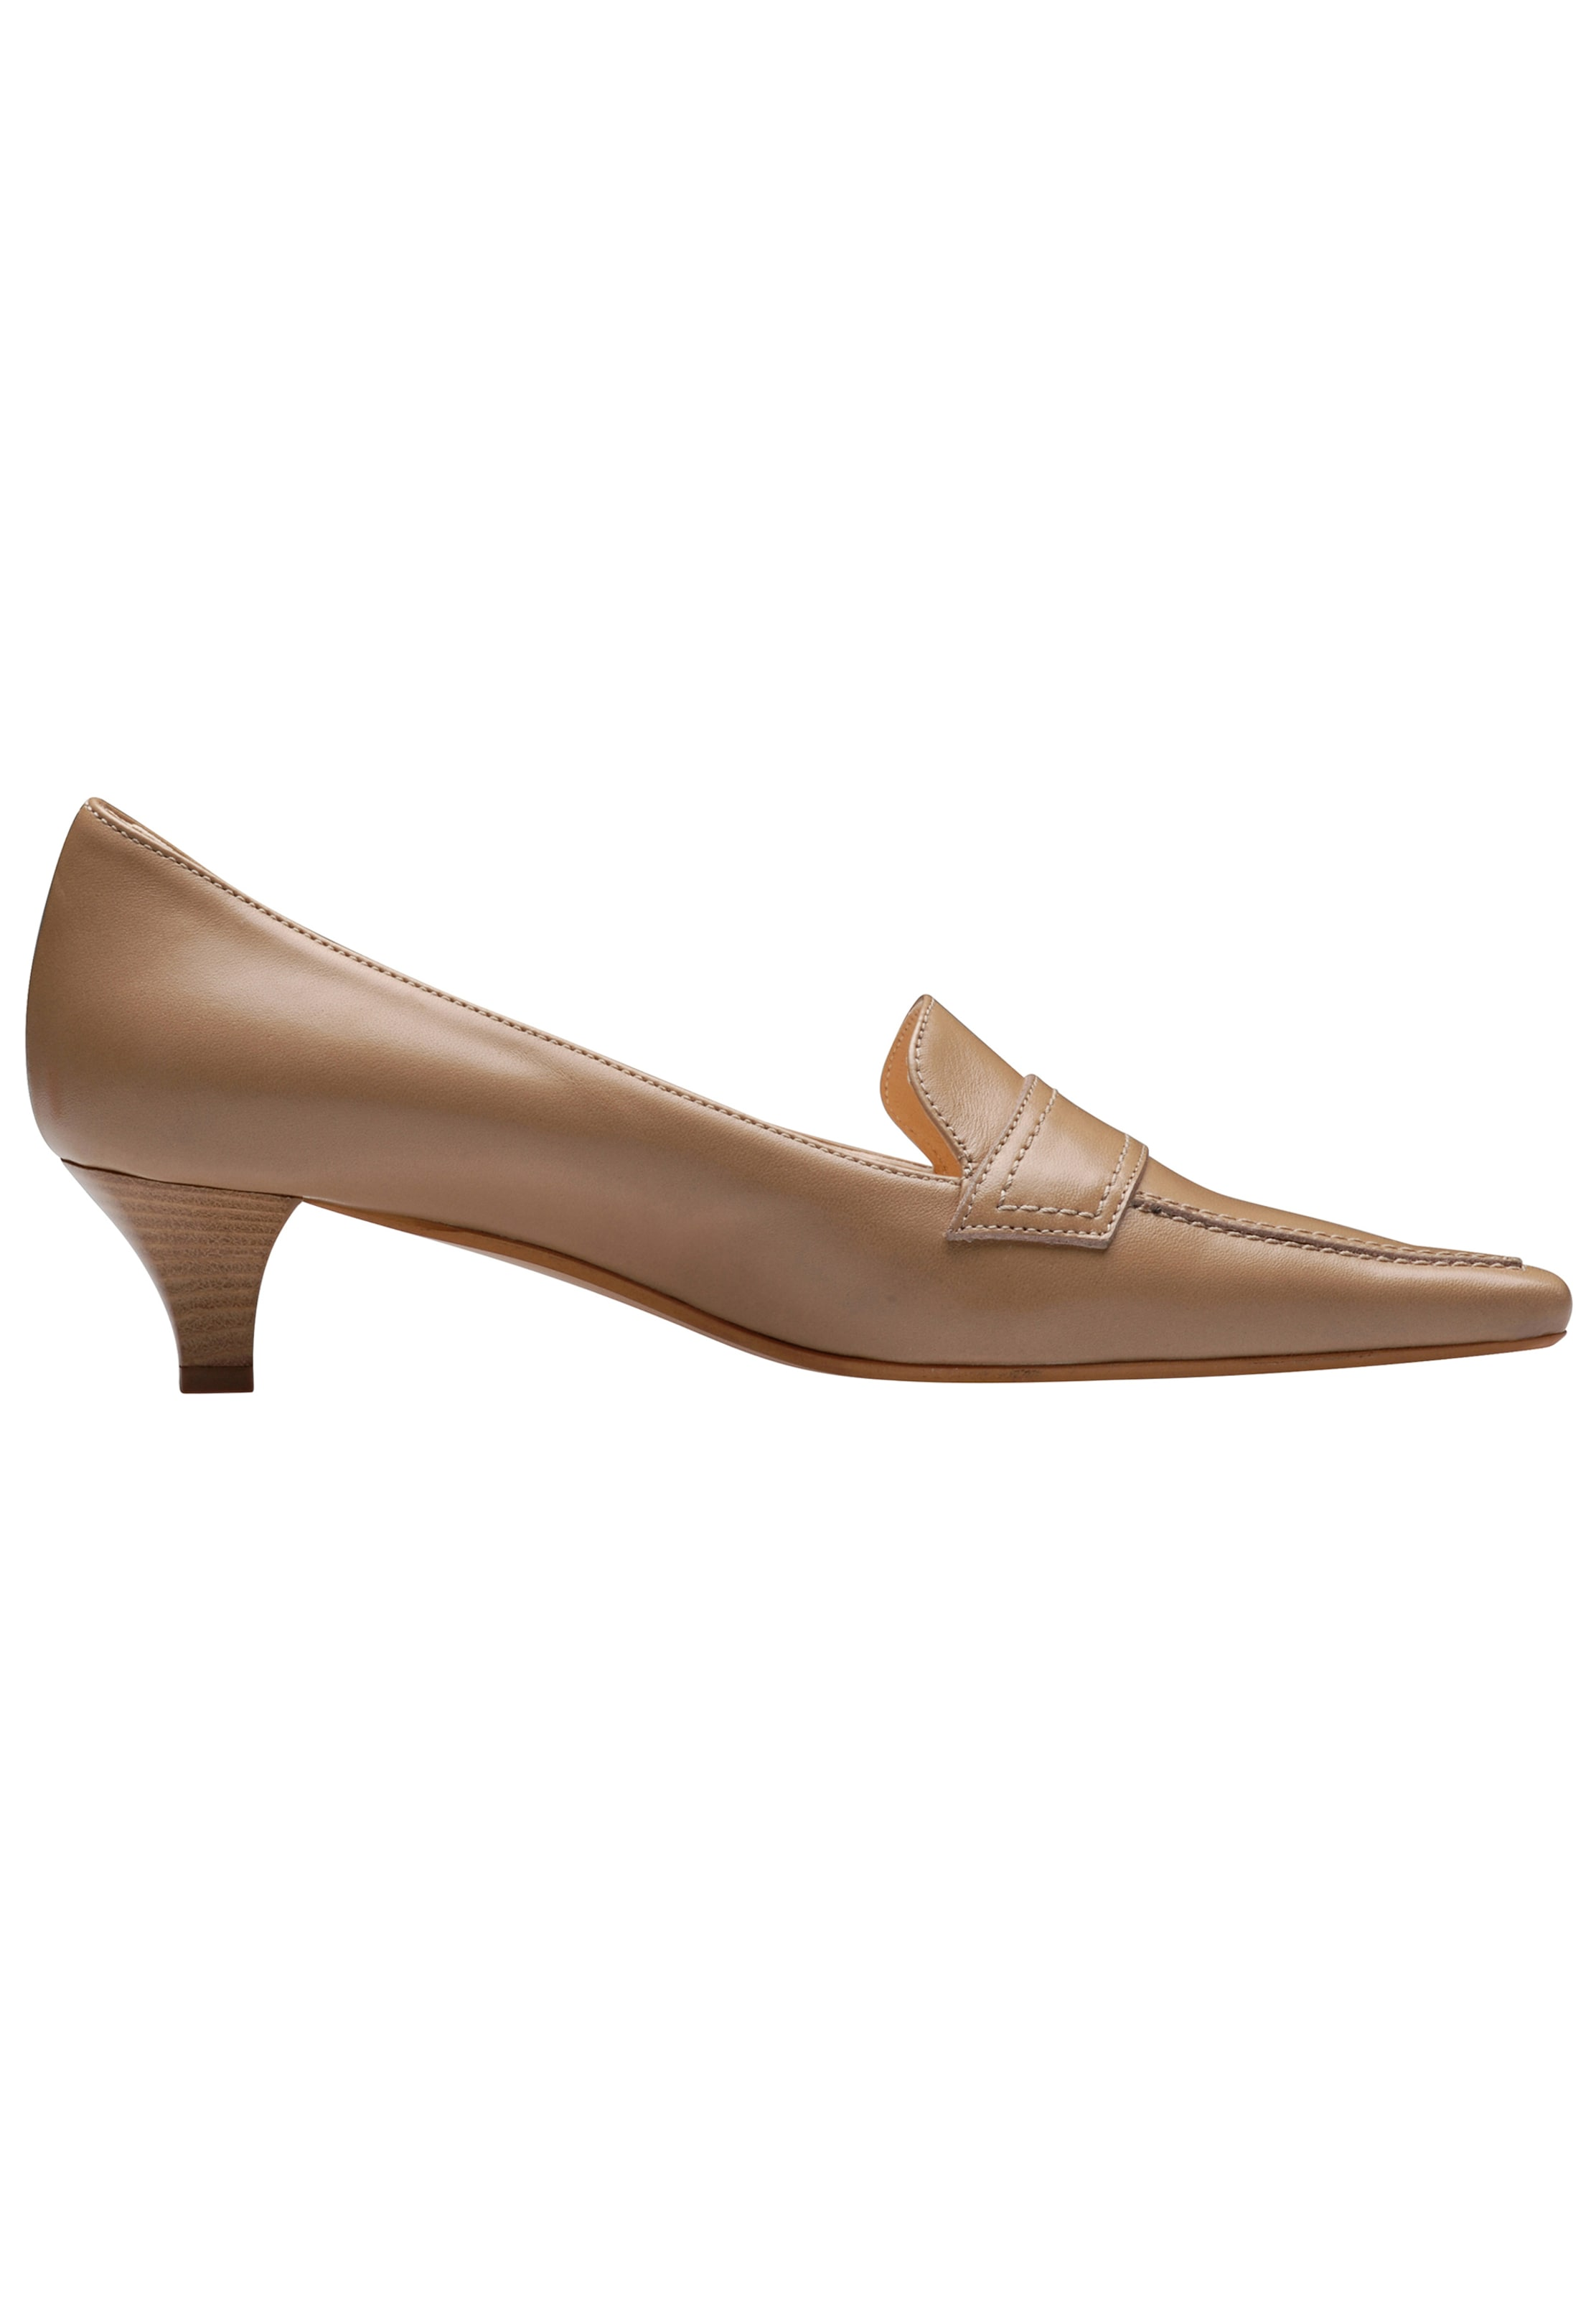 EVITA Damen Pumps in hellbraun